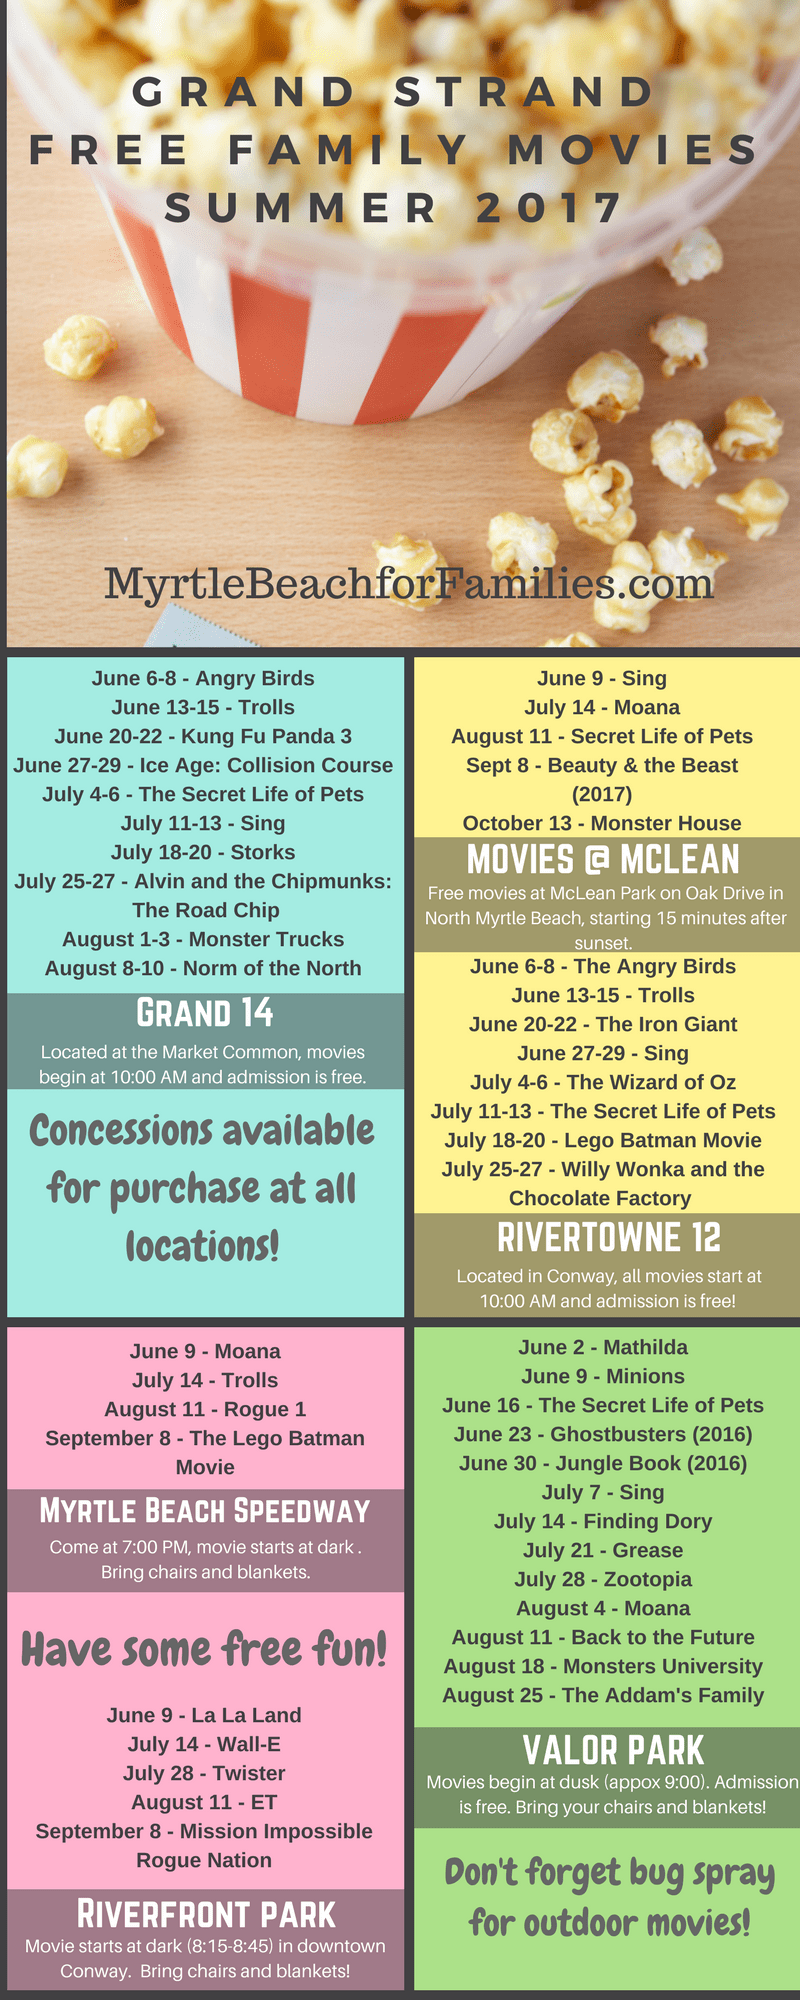 free summer movies, free movies for kids, myrtle beach, conway, north myrtle beach, movies under the stars